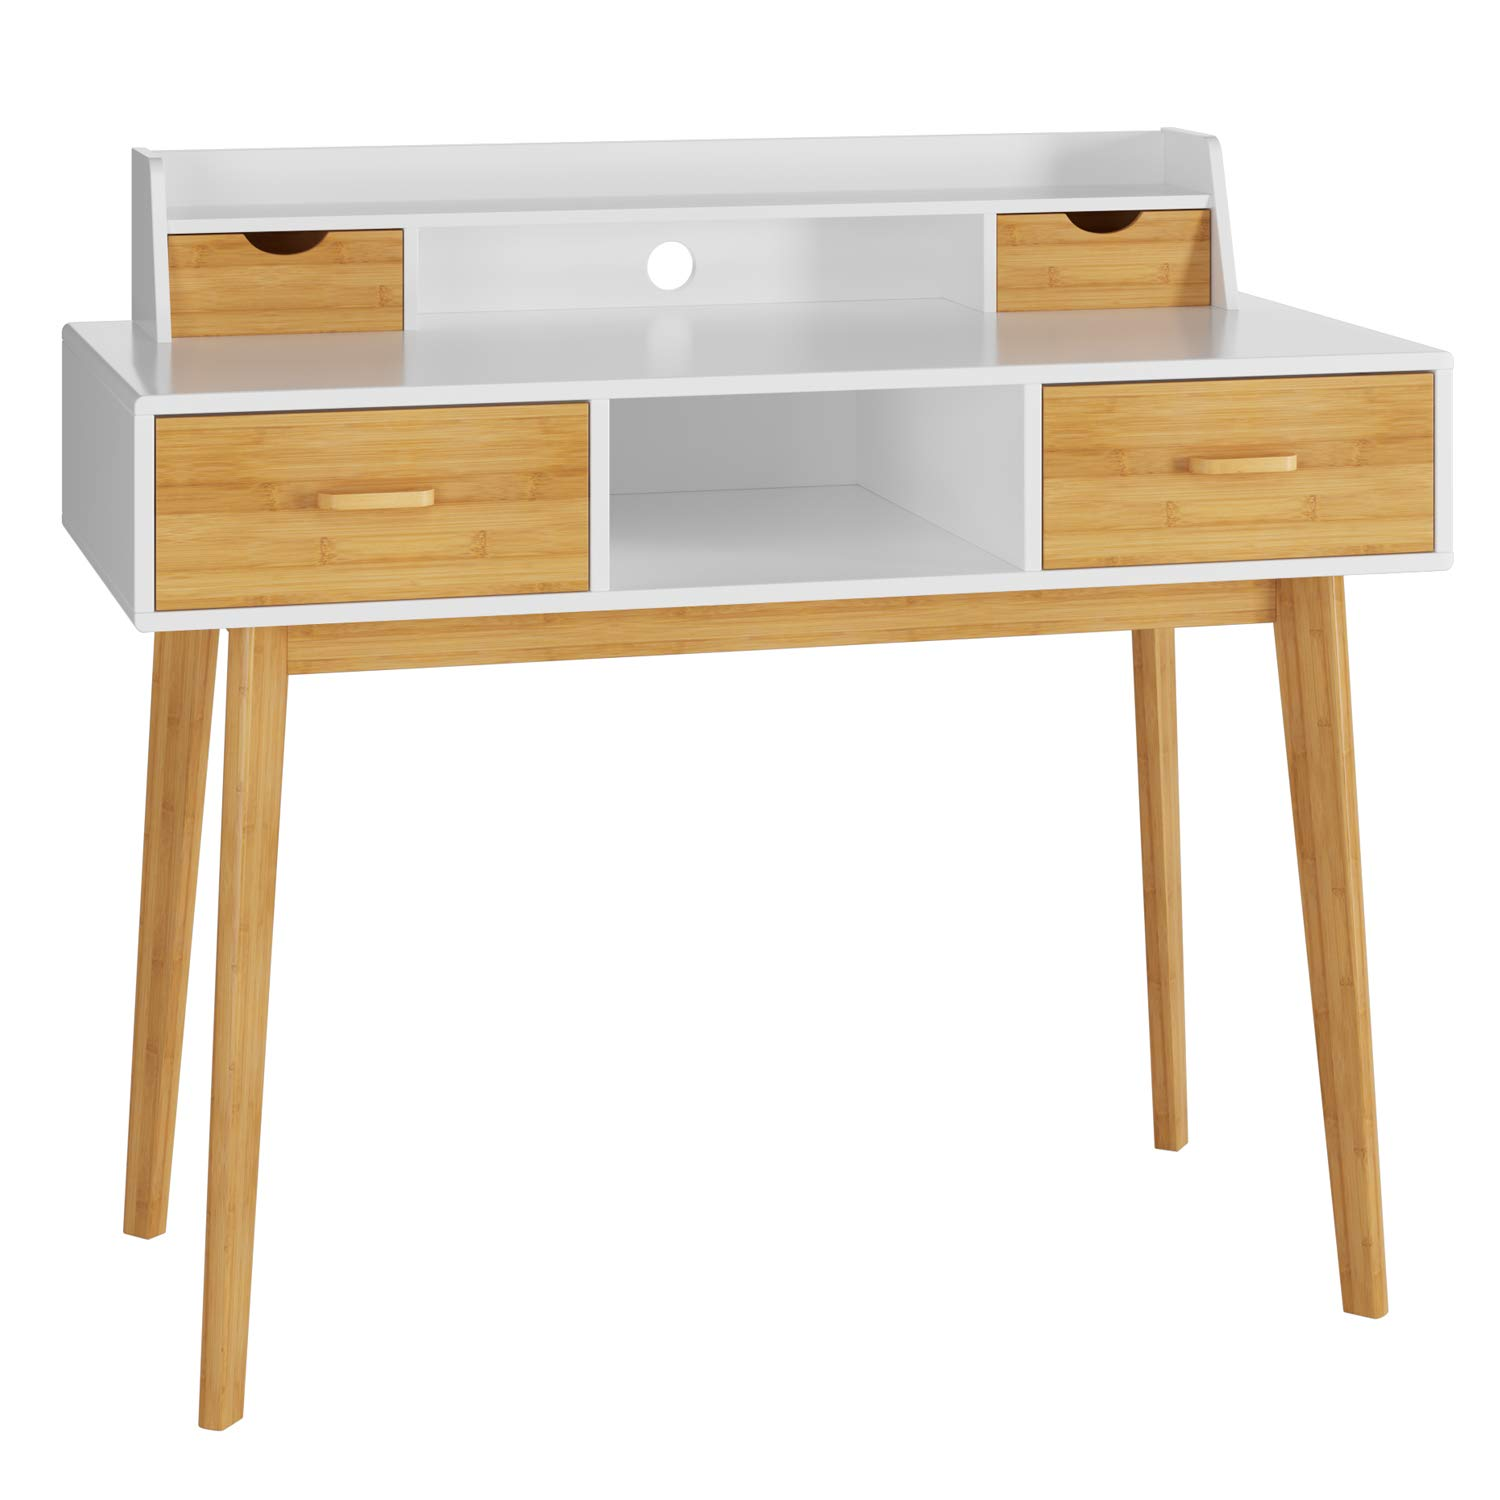 "HOMECHO Writing Desk Modern Computer Laptop PC Desk Table Wood Workstation for Home Office Student Study Room, with 4 Drawers & Storage Shelf &Bamboo Legs, 42.5"", White, HMC-MD-029"